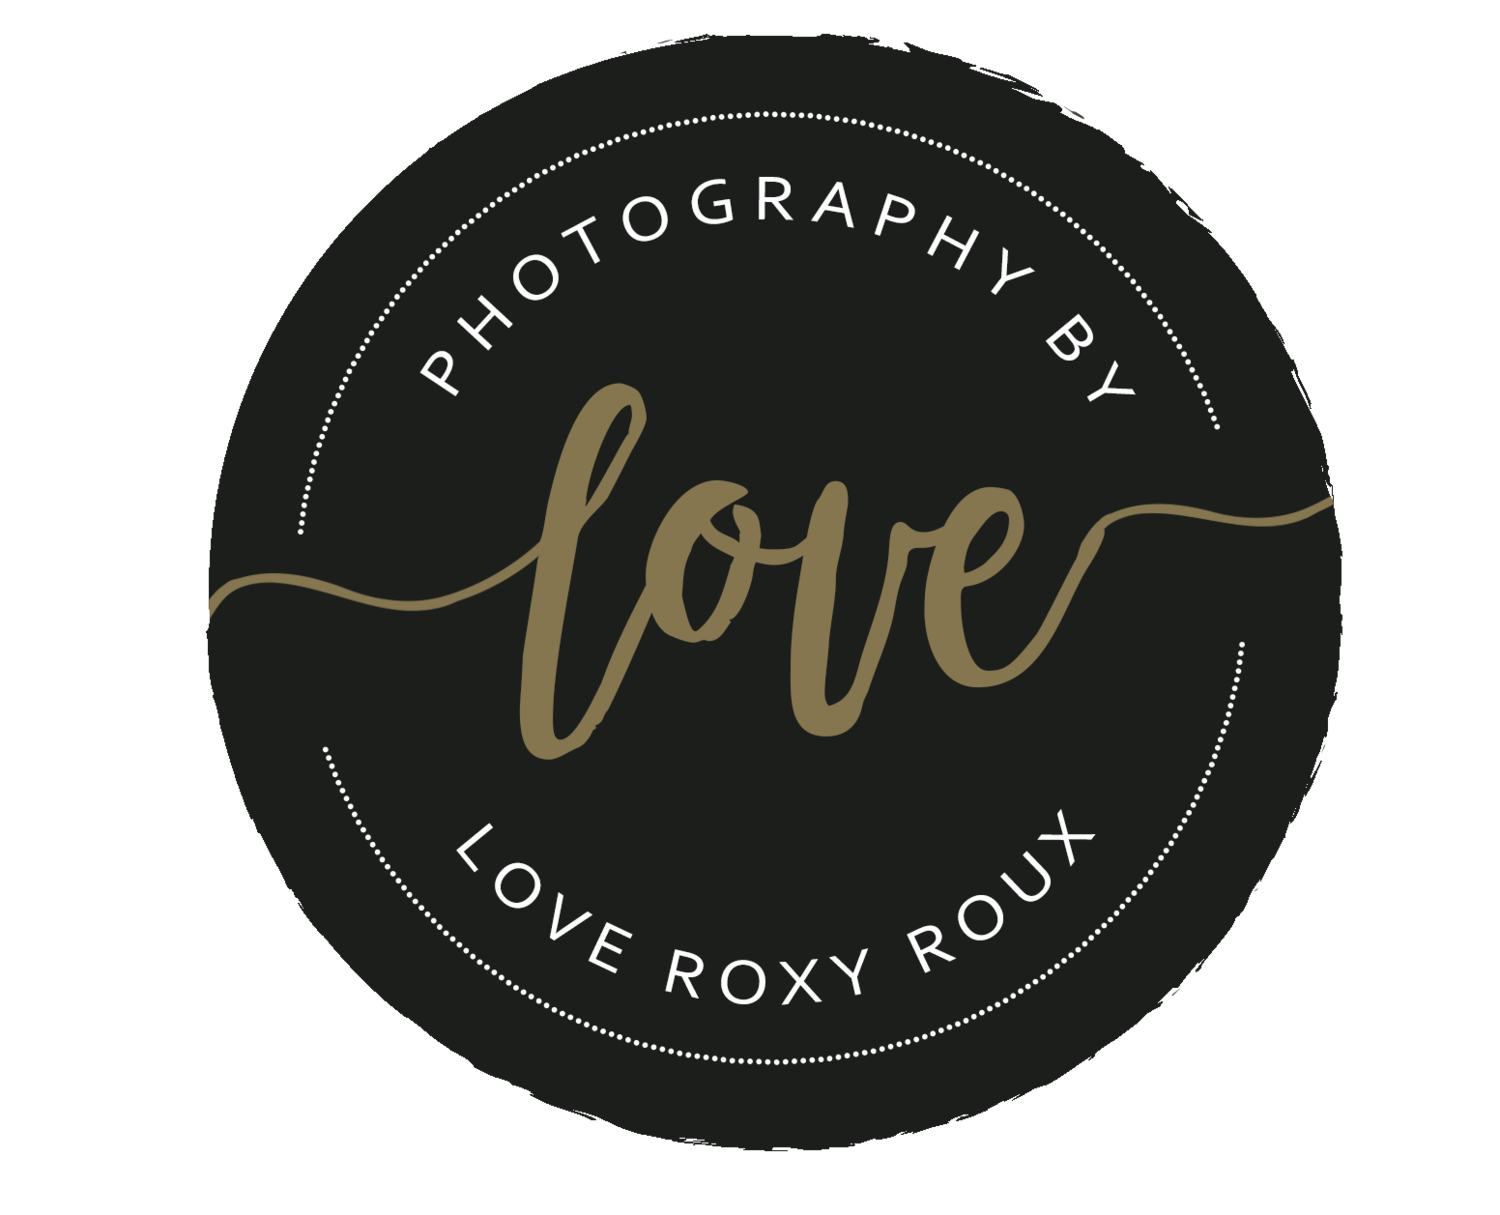 Photography by Love Roxy Roux